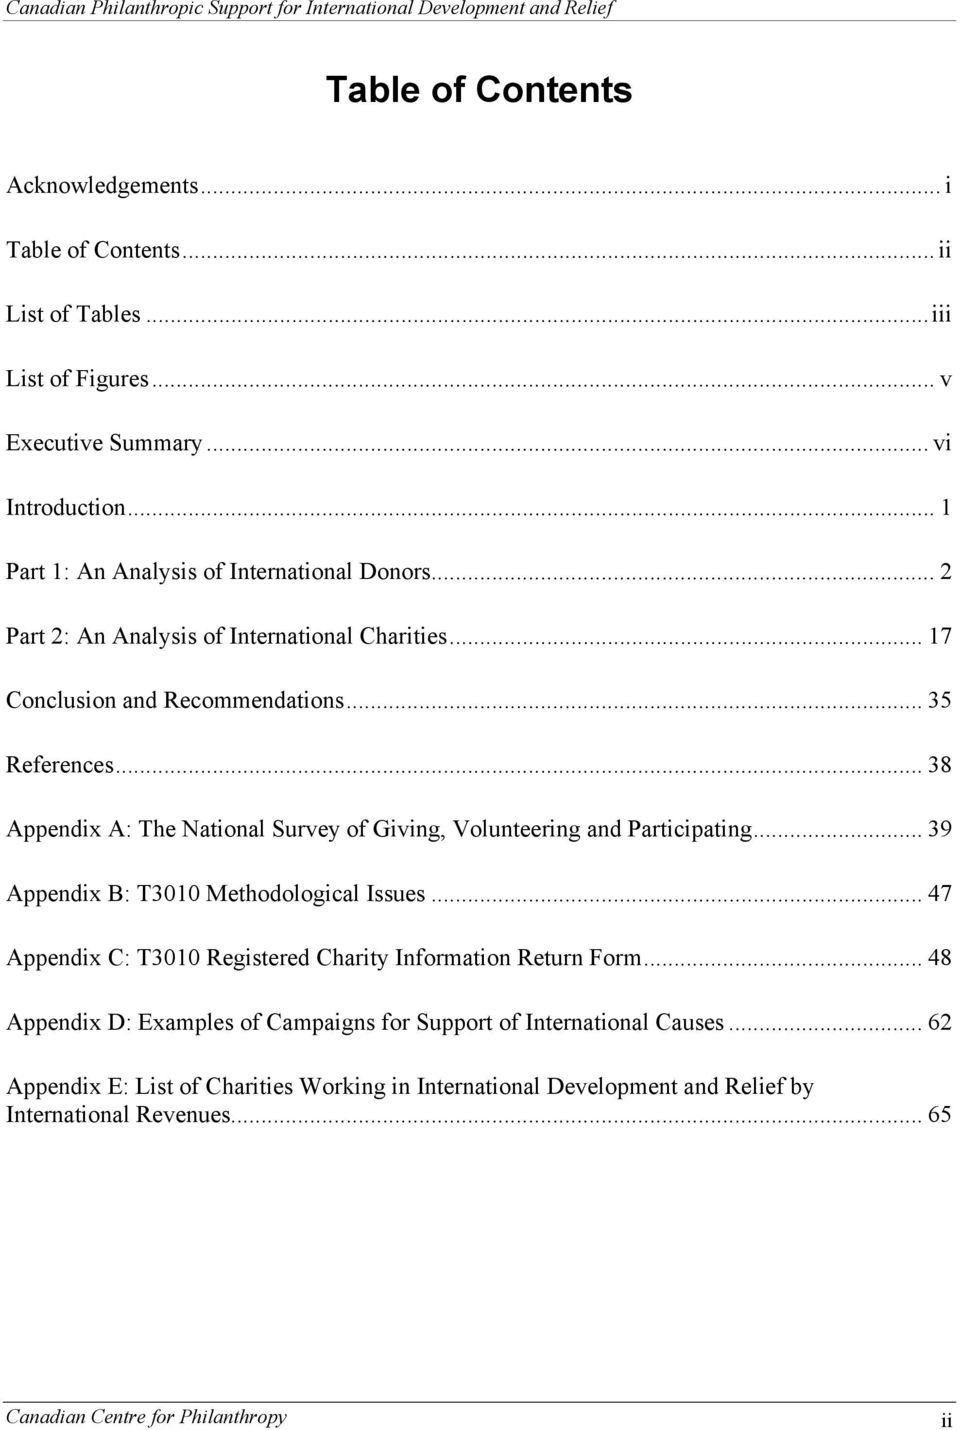 .. 38 Appendix A: The National Survey of Giving, Volunteering and Participating... 39 Appendix B: T3010 Methodological Issues.